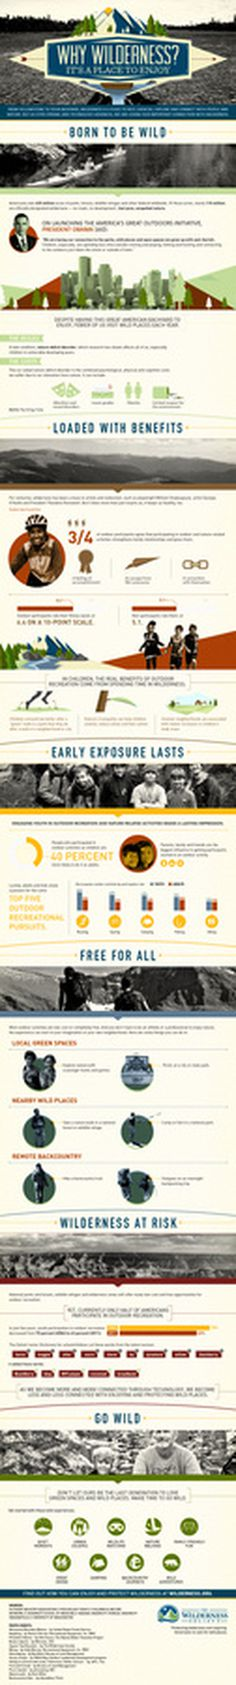 Why does wilderness matter? This infographic explains | Wilderness.org #infographic #green #wilderness #environment